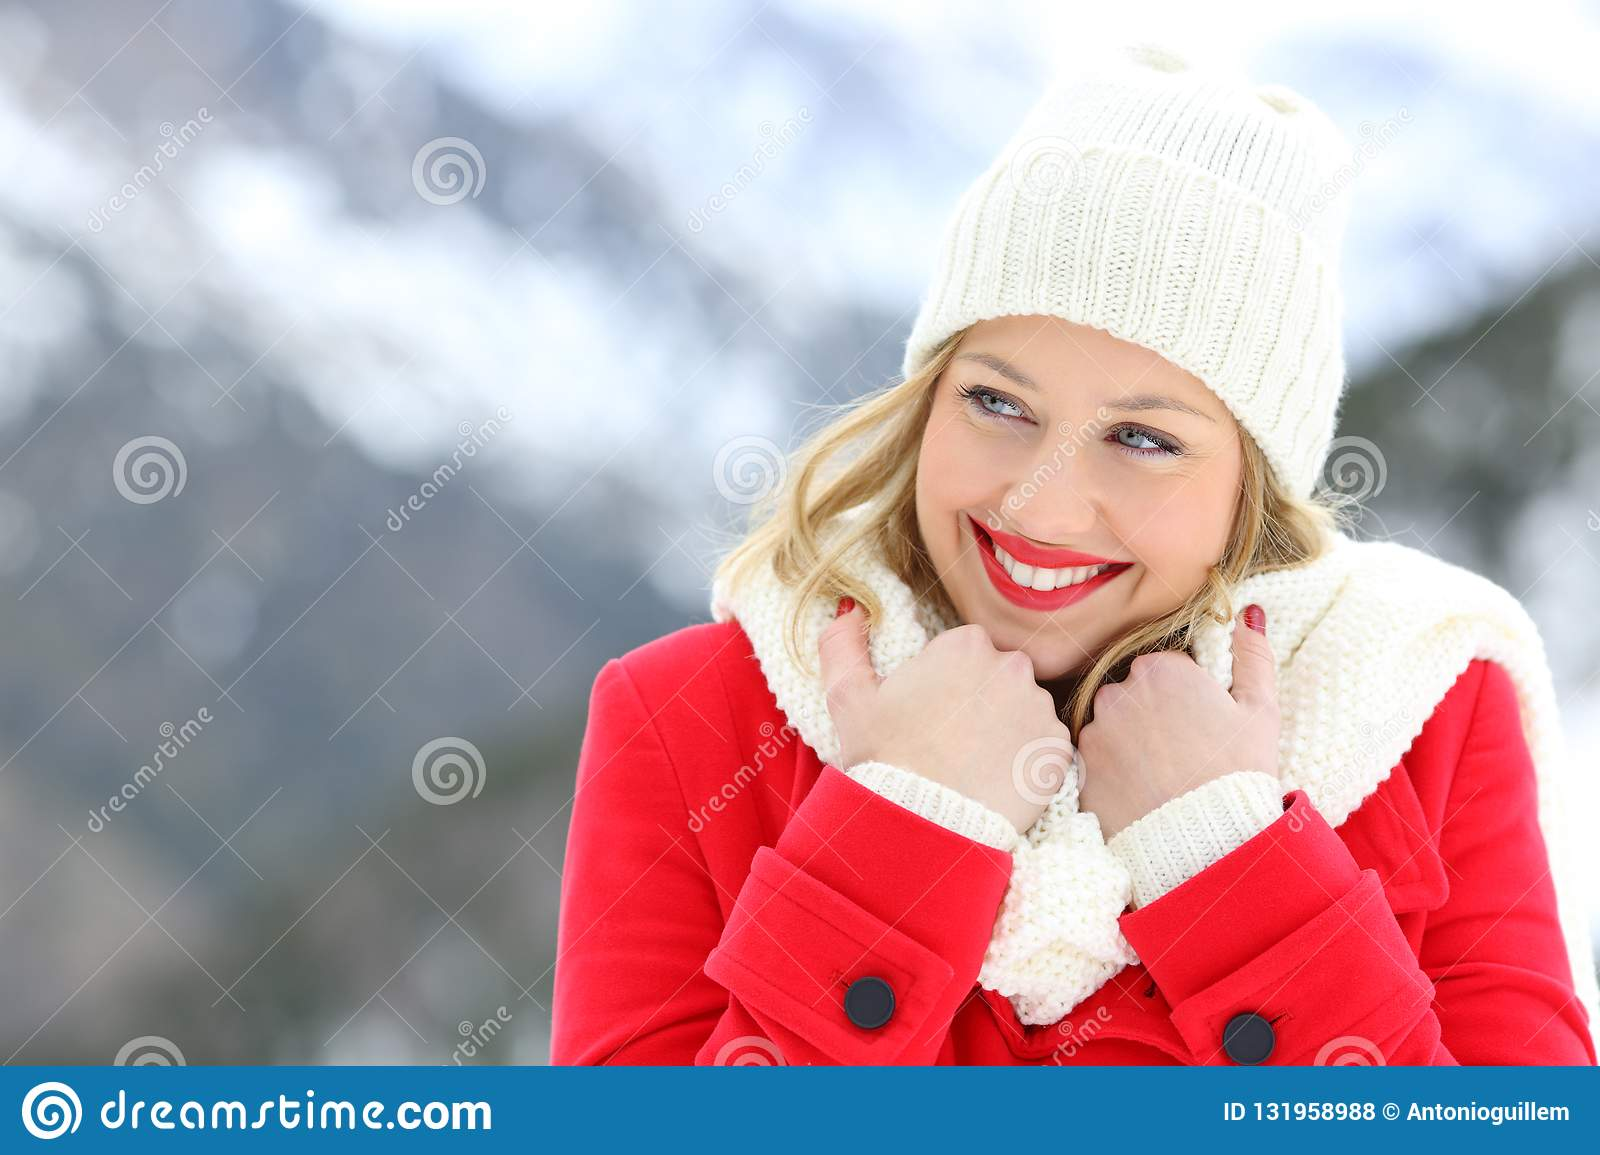 fd96930a3b26 Candid Woman Keeping Warm In Winter Holiday Stock Photo - Image of ...